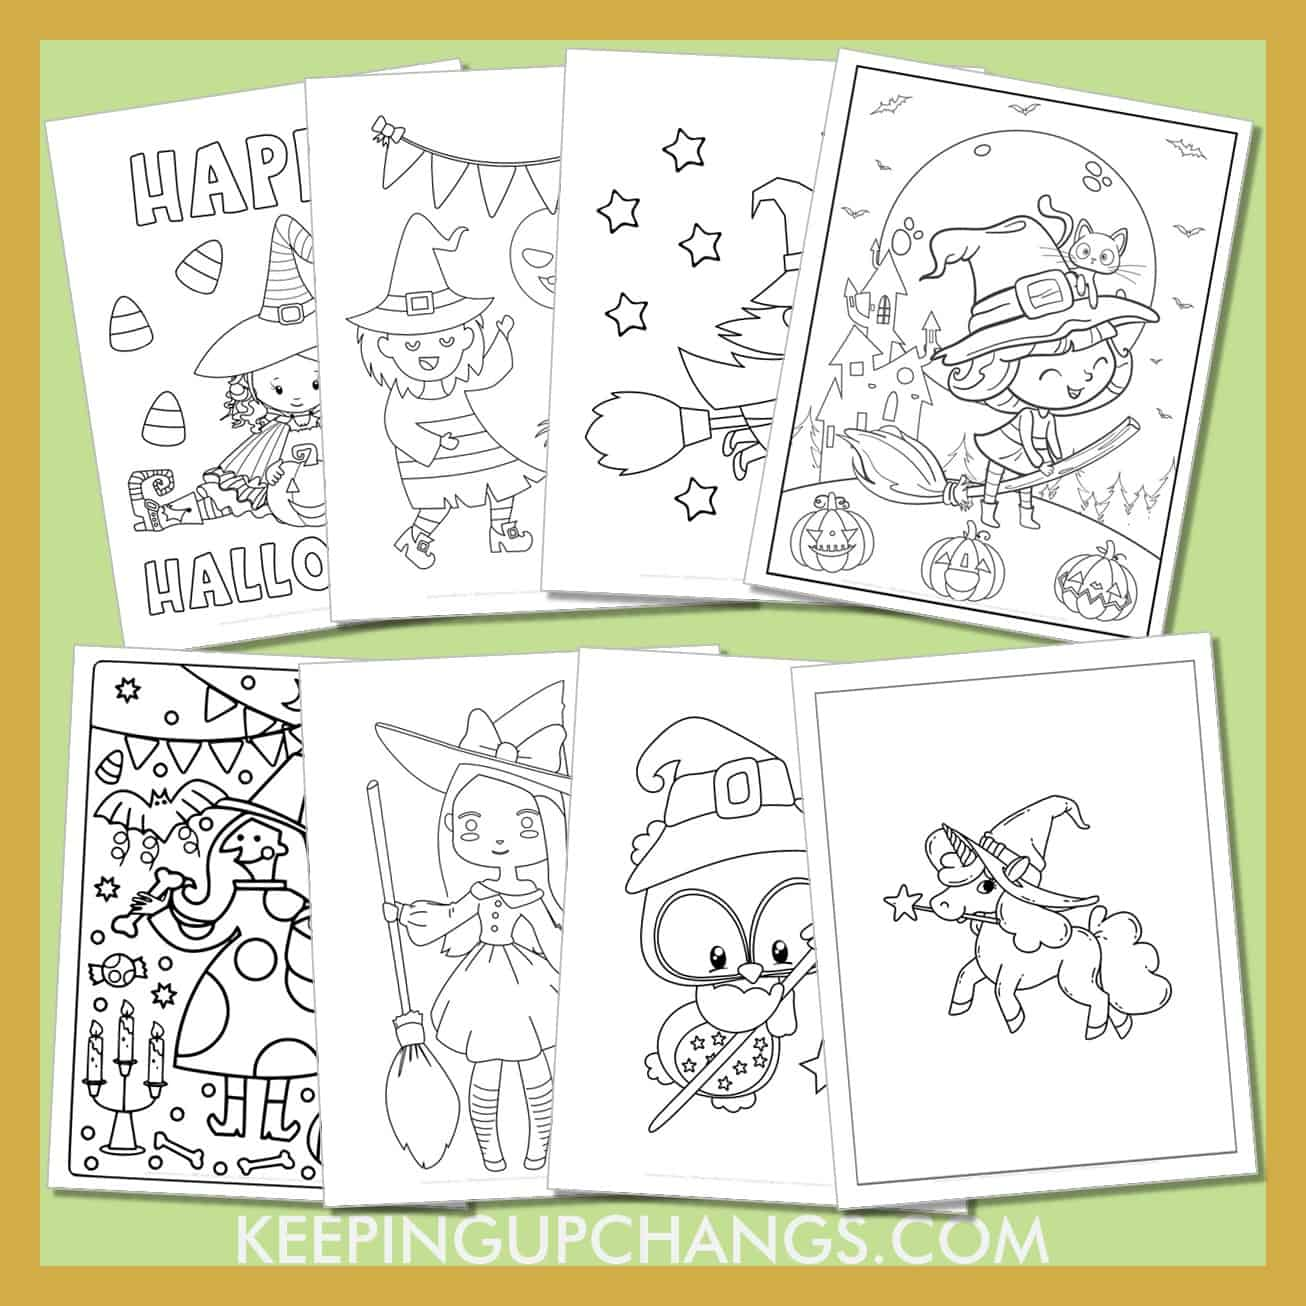 witch colouring sheets including cute cut out template for toddlers, preschool, happy halloween and more.